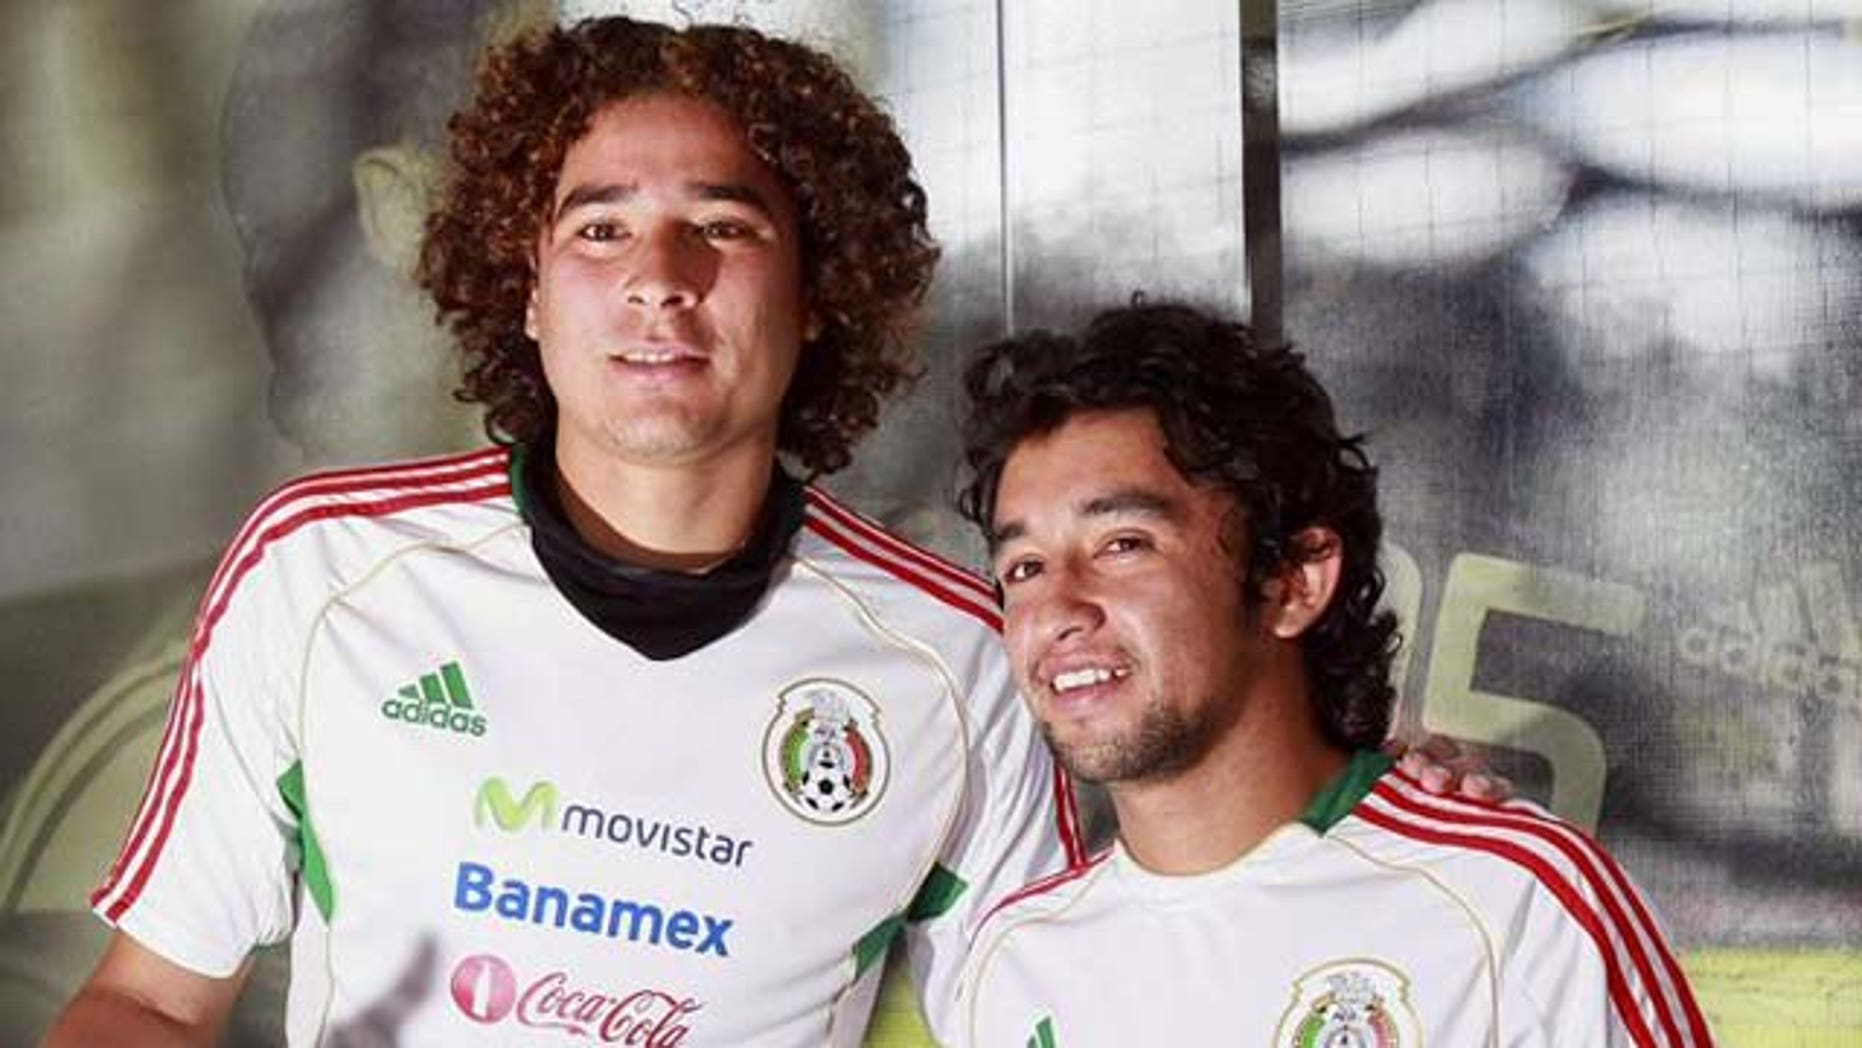 Second doping test of Mexican soccer players comes back clean Goalkeeper Guillermo Ochoa (left) and midfielder Christian Bermudez at a Mexican national soccer team practice. EFE/File